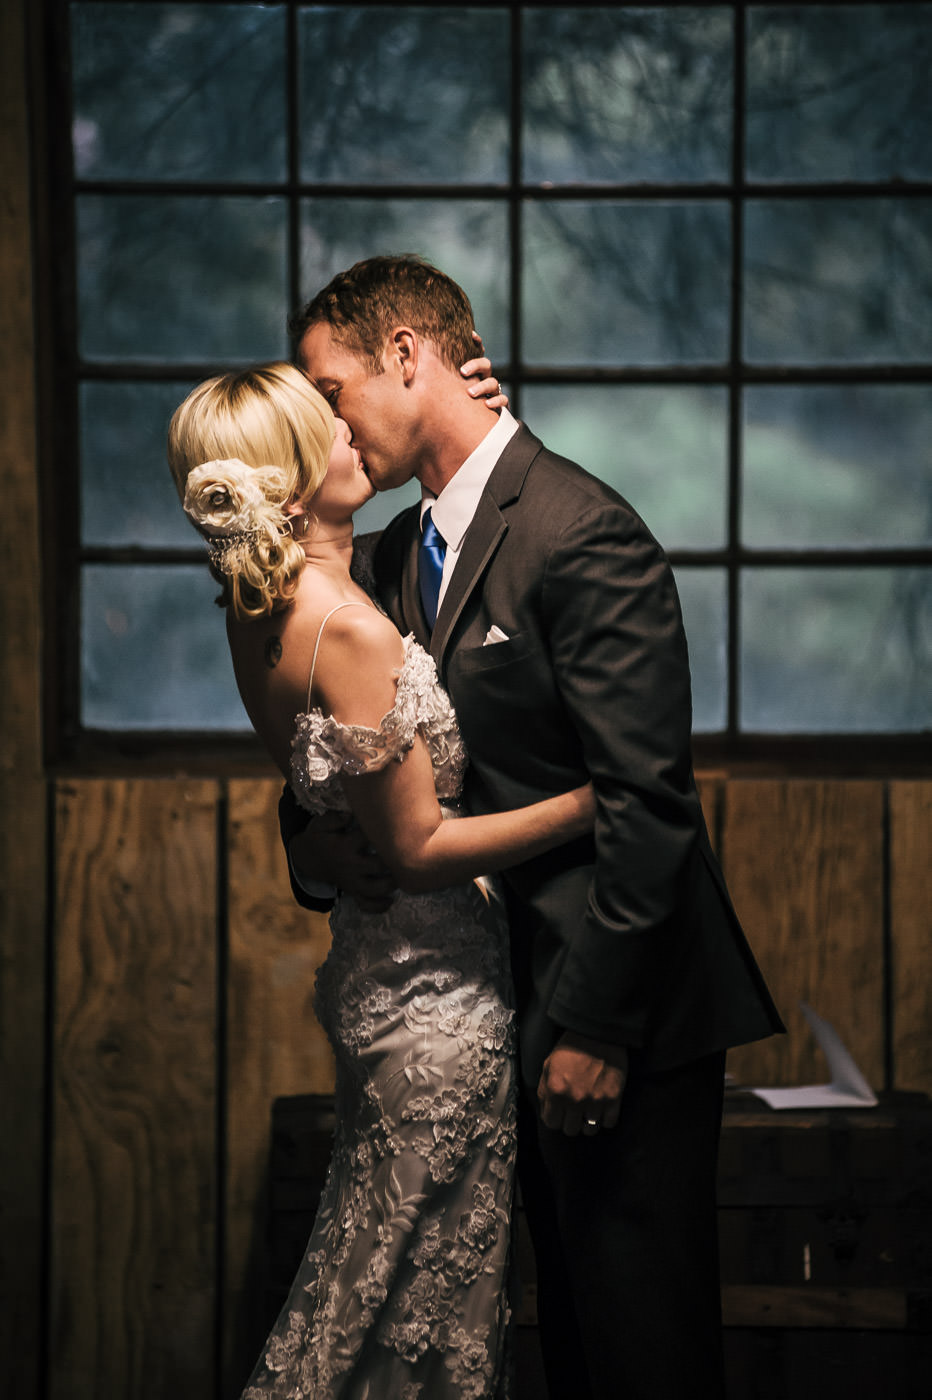 romantic first kiss between a loving bride and groom at whispering oaks terrace